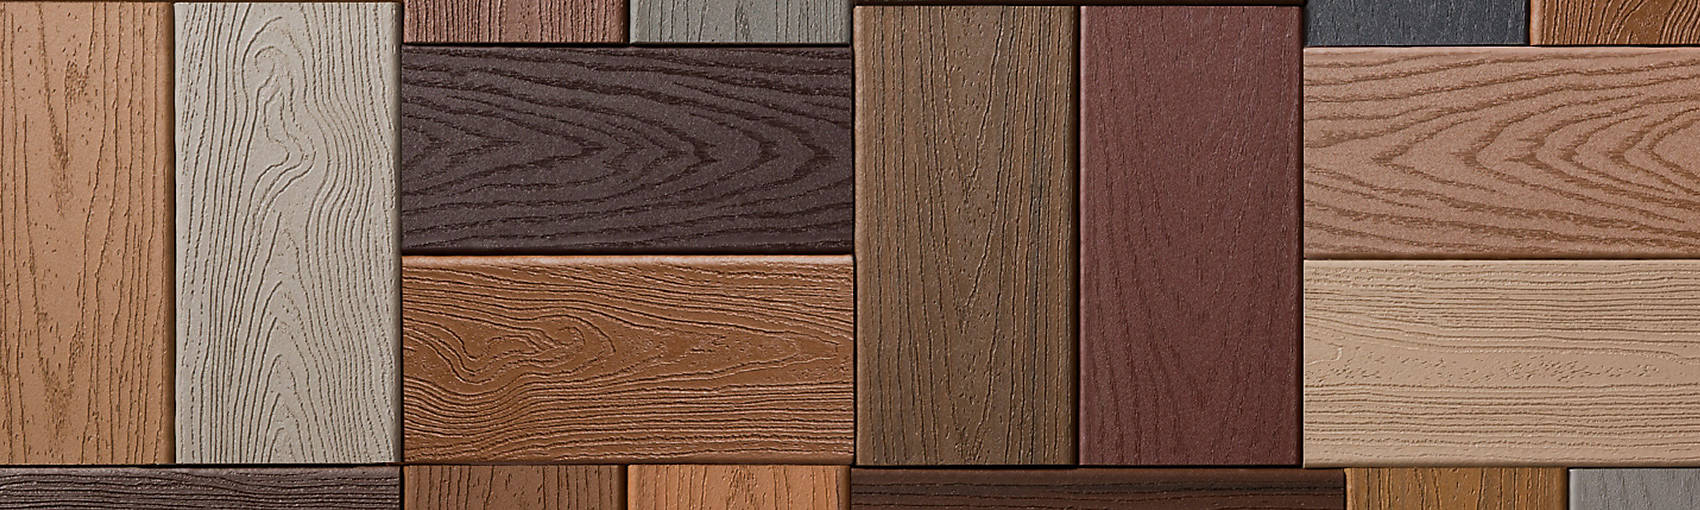 Lovely composite wood colors 3 amazing trex decking colors 69 trex lovely composite wood colors 3 amazing trex decking colors 69 trex wood colors composite decking color chart nvjuhfo Gallery